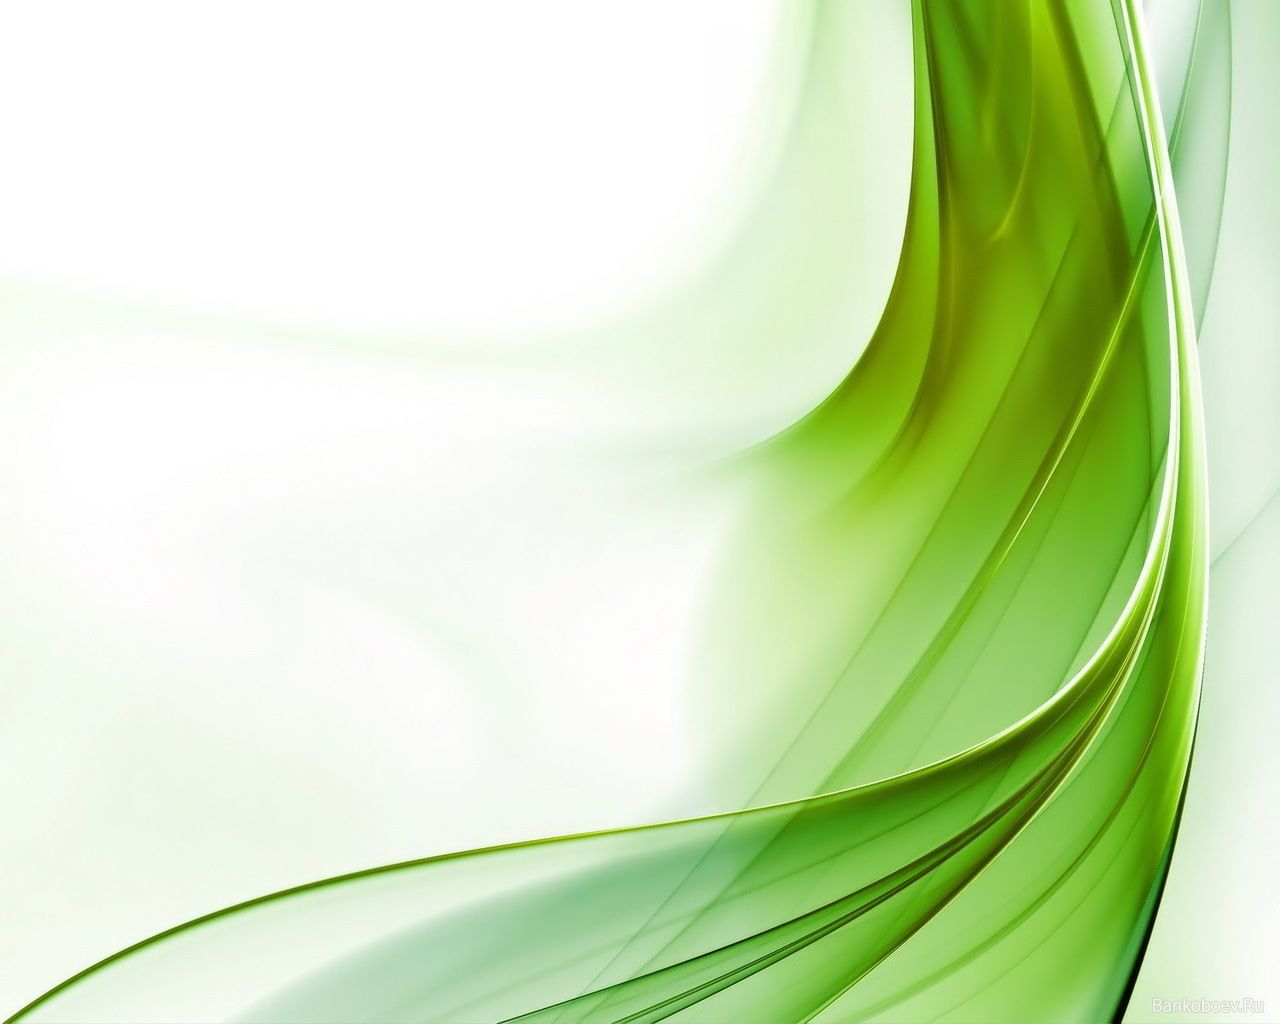 Green wave abstract backgrounds for powerpoint templates recipes green wave abstract backgrounds for powerpoint templates toneelgroepblik